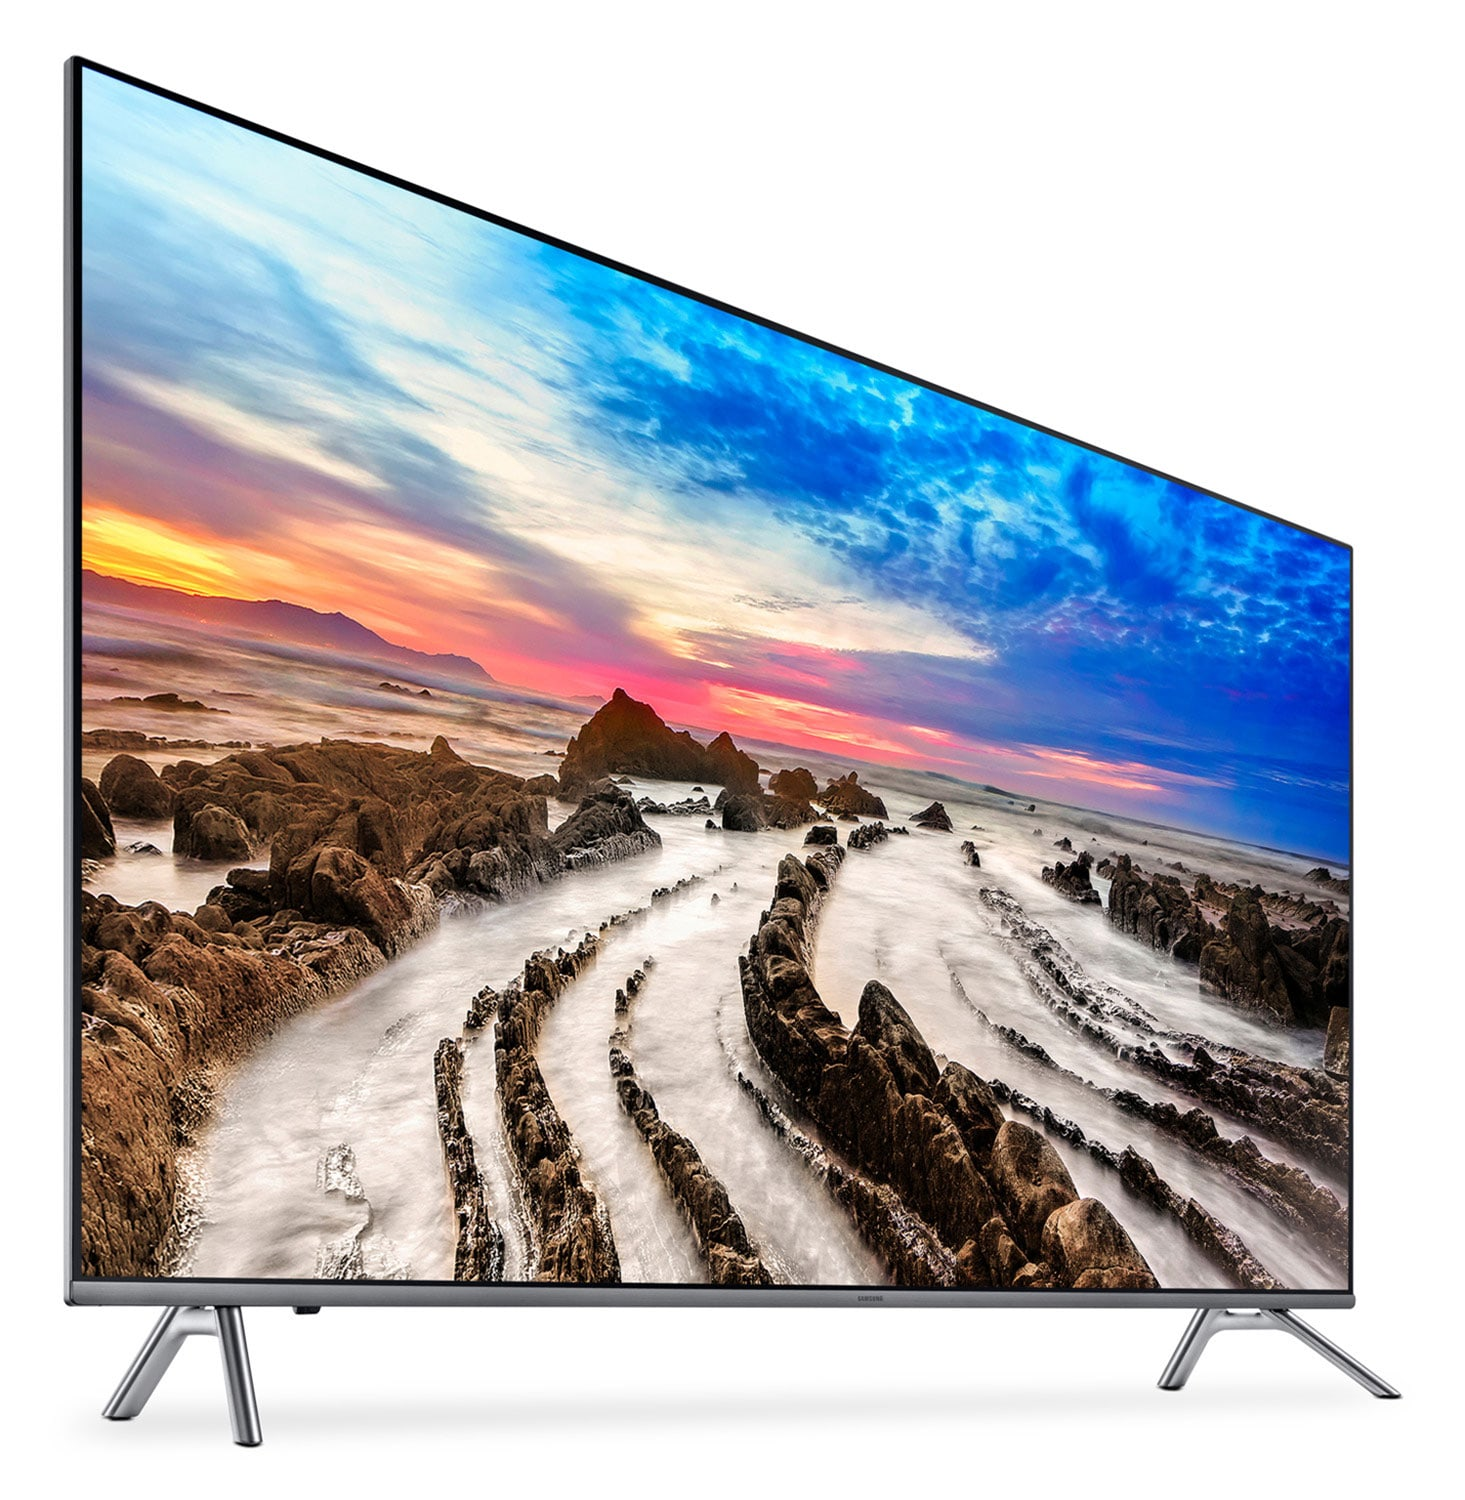 samsung 55 mu8000 series 8 uhd 4k smart television the brick. Black Bedroom Furniture Sets. Home Design Ideas